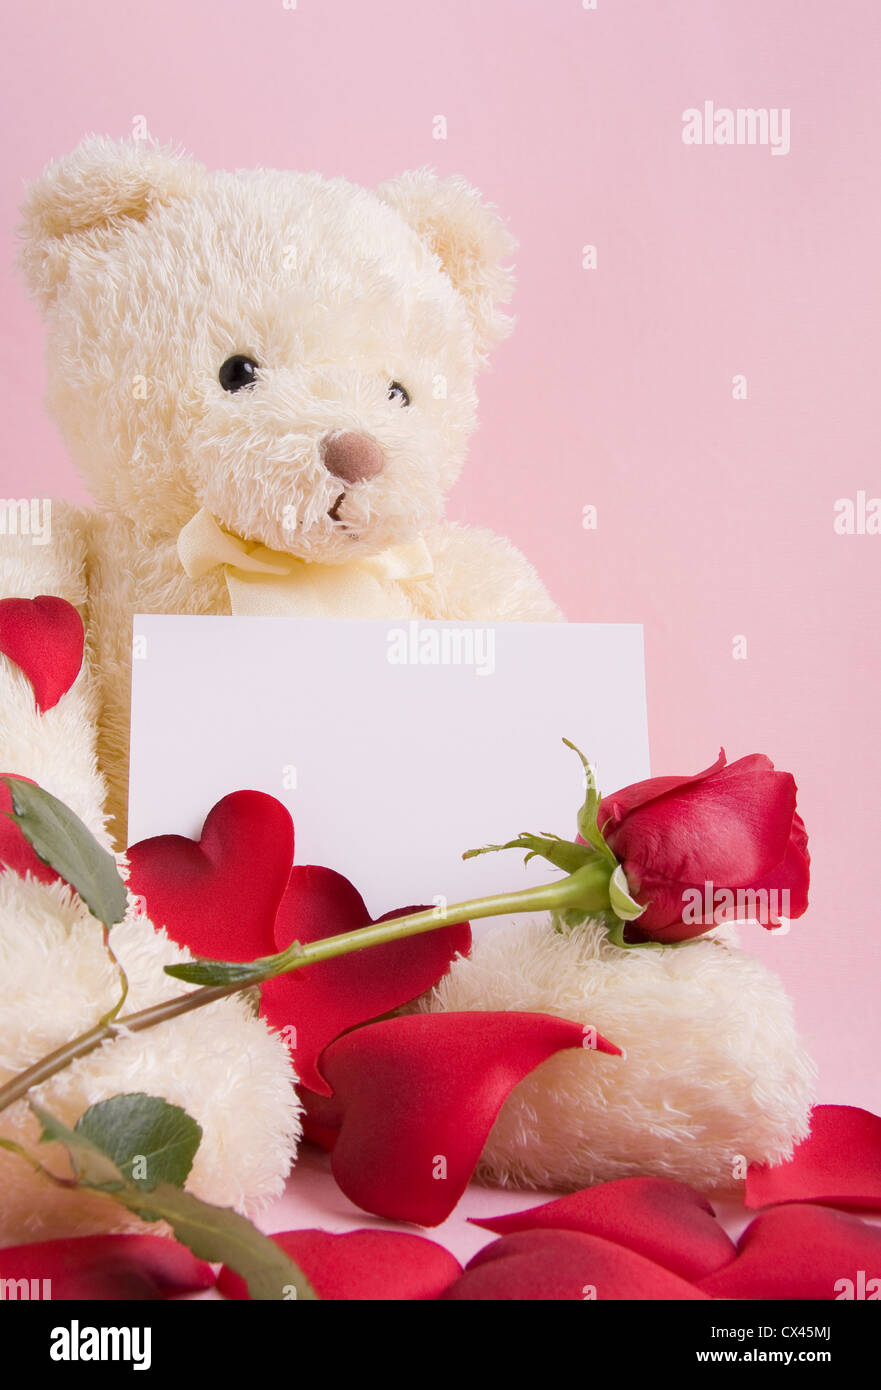 Teddy bear red rose stock photos teddy bear red rose stock images valentine concept a beautiful bear with roses and a card with space for text izmirmasajfo